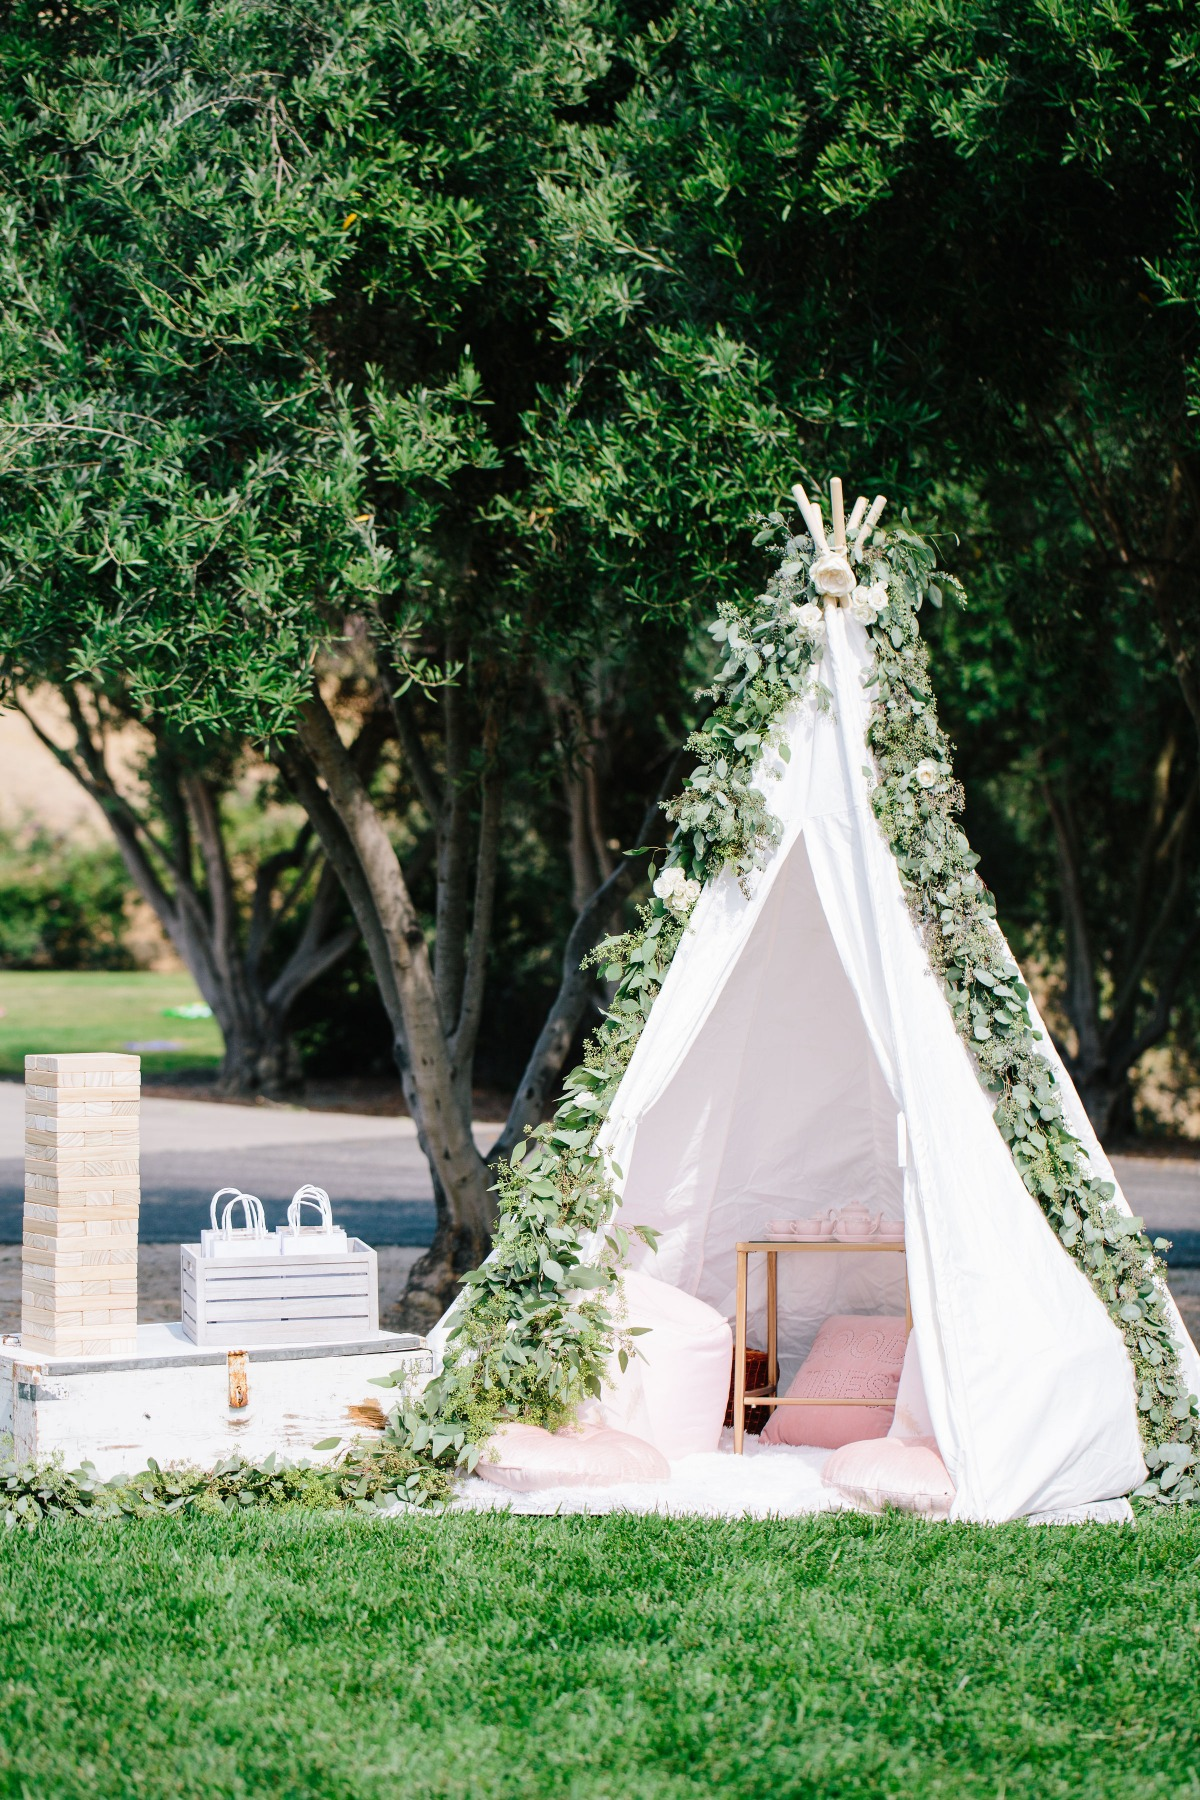 Wedding teepee for kids